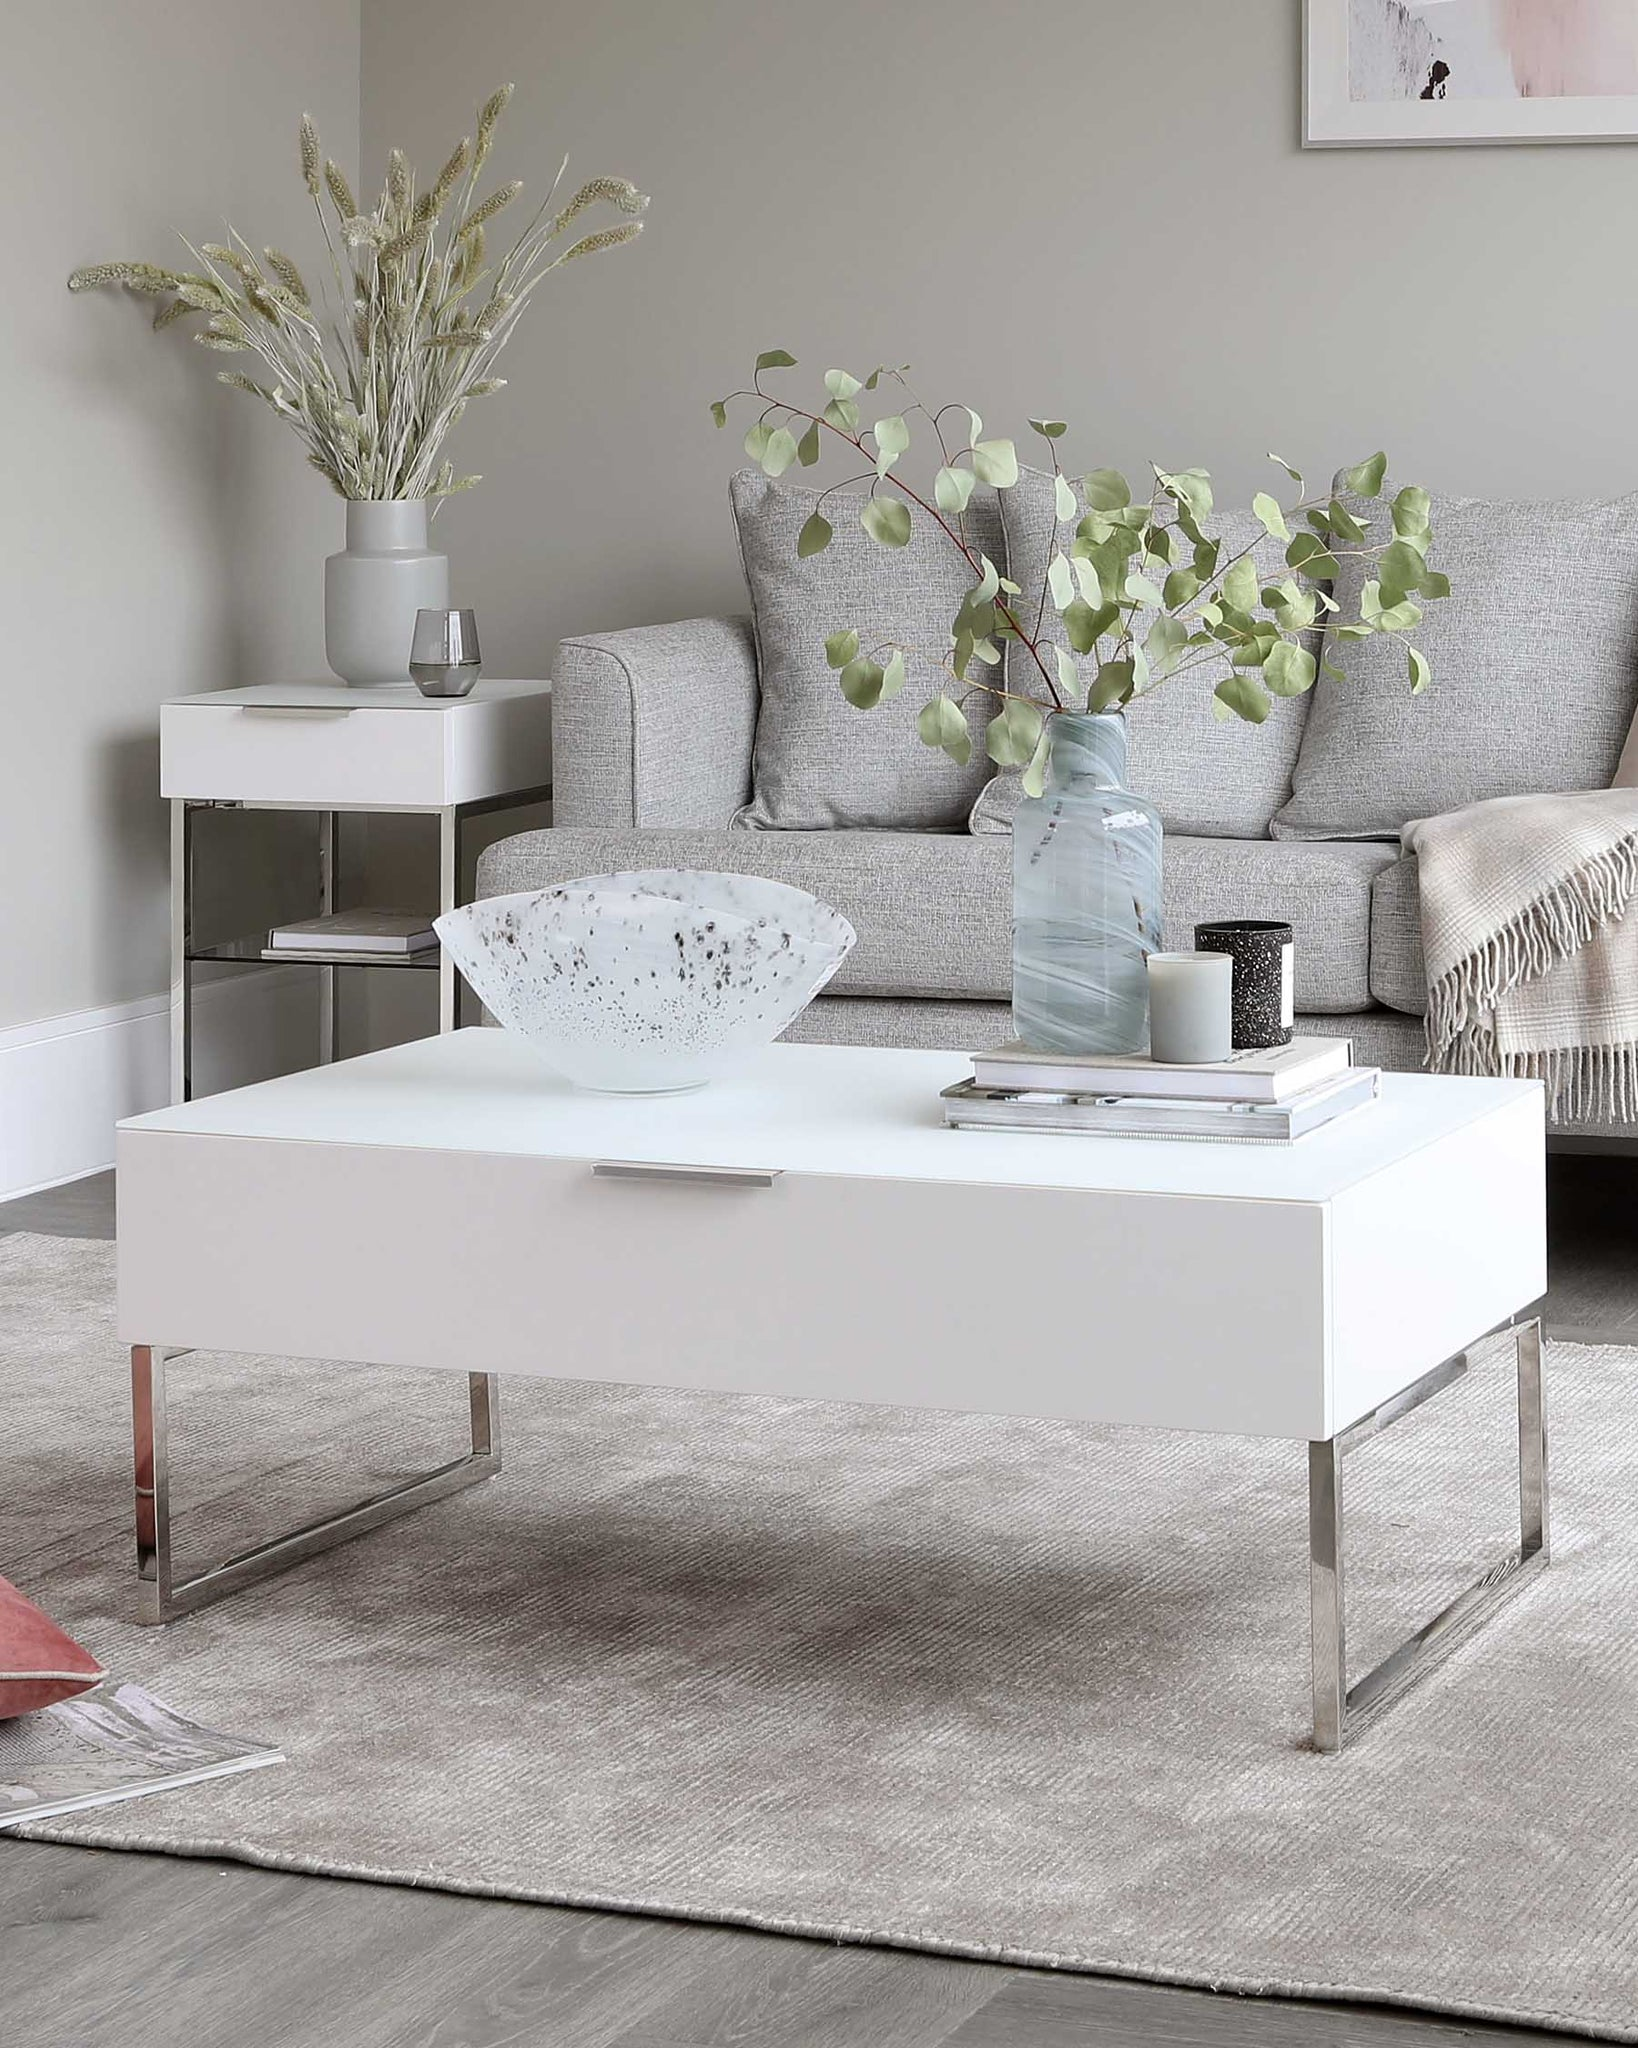 Aspen Matt White Coffee Table